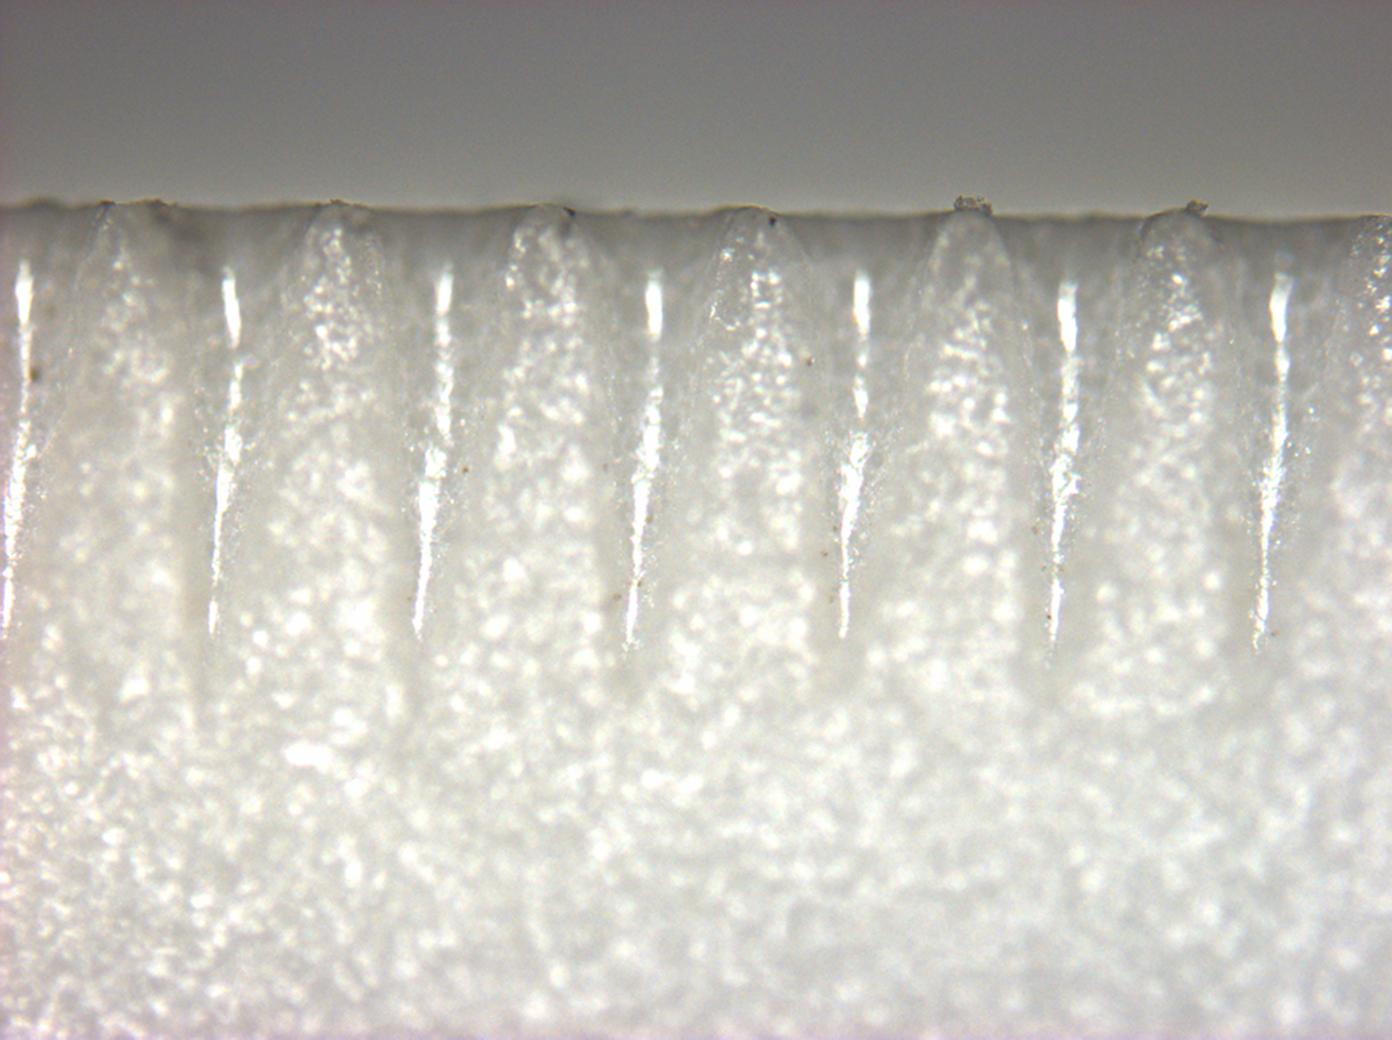 Microscope image of laser-scribed alumina ceramic